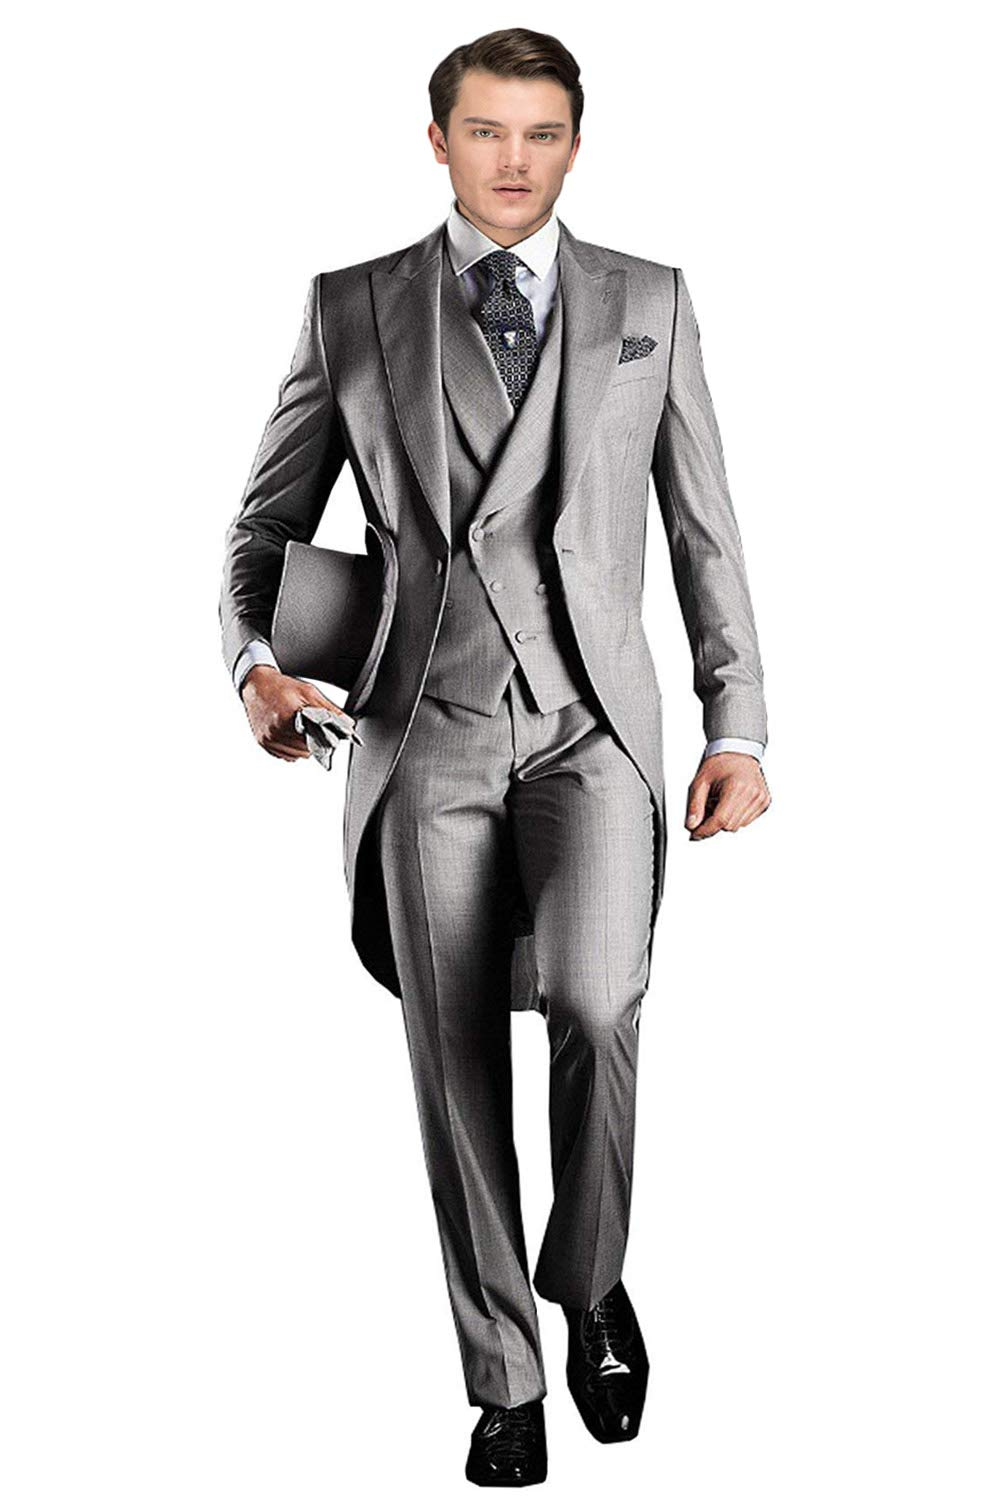 Wemaliyzd Men's Classic 3 Pieces Tux Suit One Button Regular Fit Long Tail Tuxedos(Silver,40L)